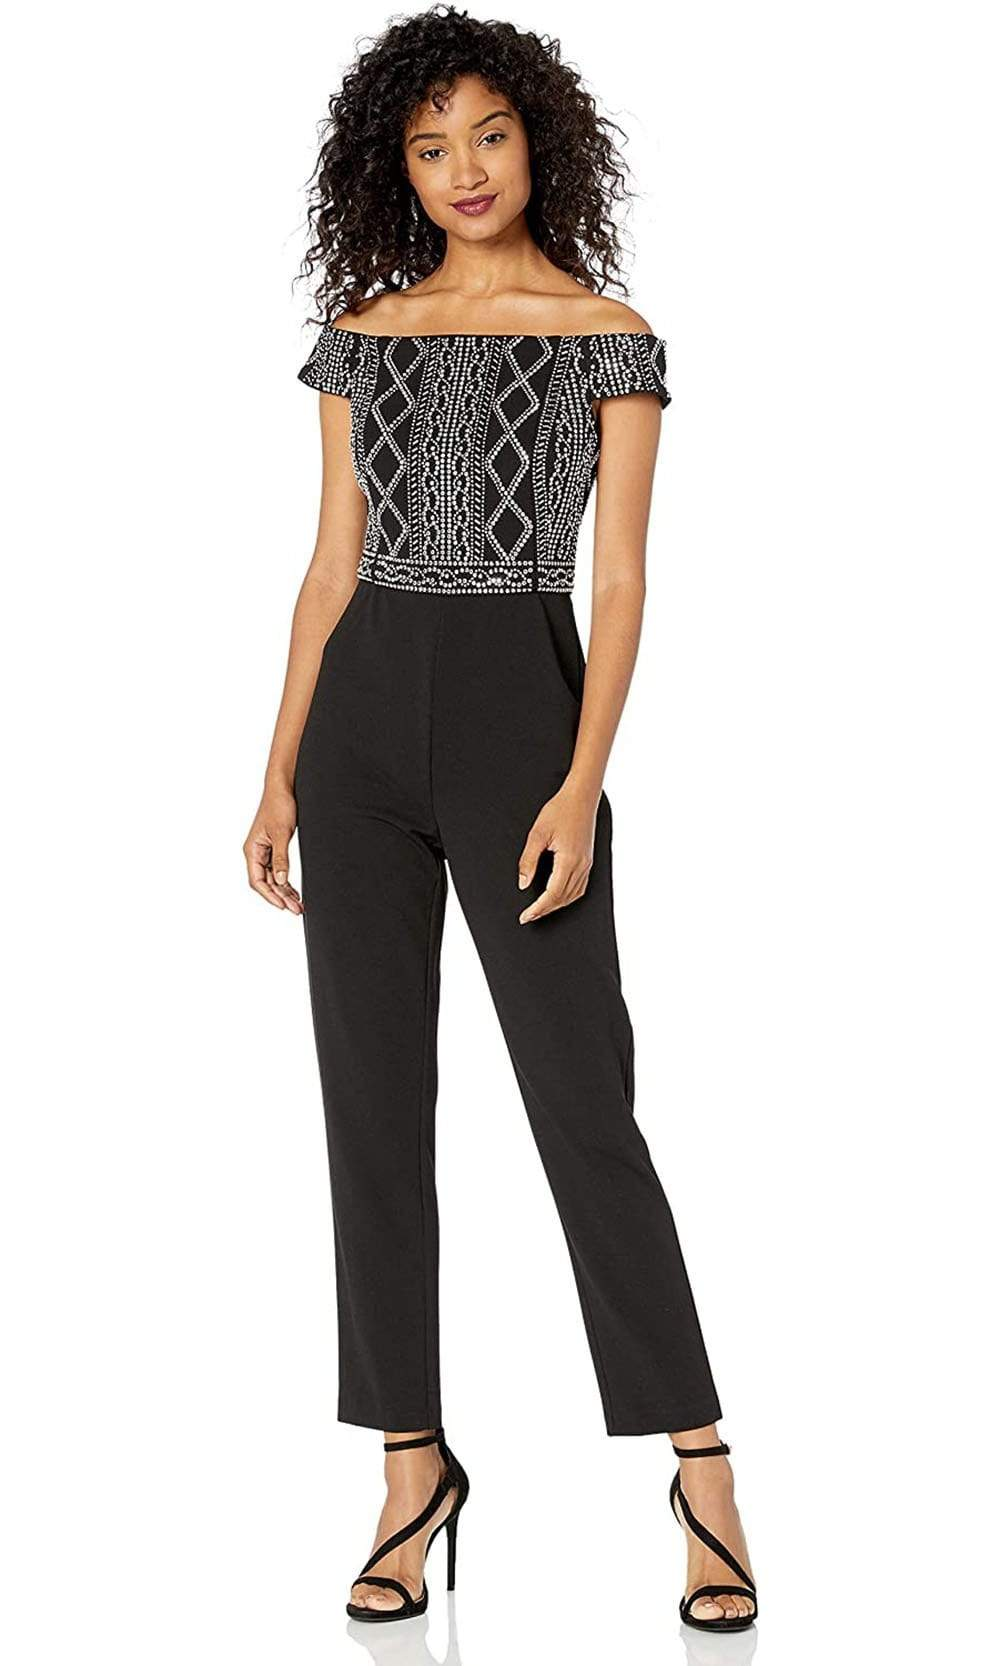 Adrianna Papell - AP1E206601 Embellished Off Shoulder Jumpsuit from Adrianna Papell